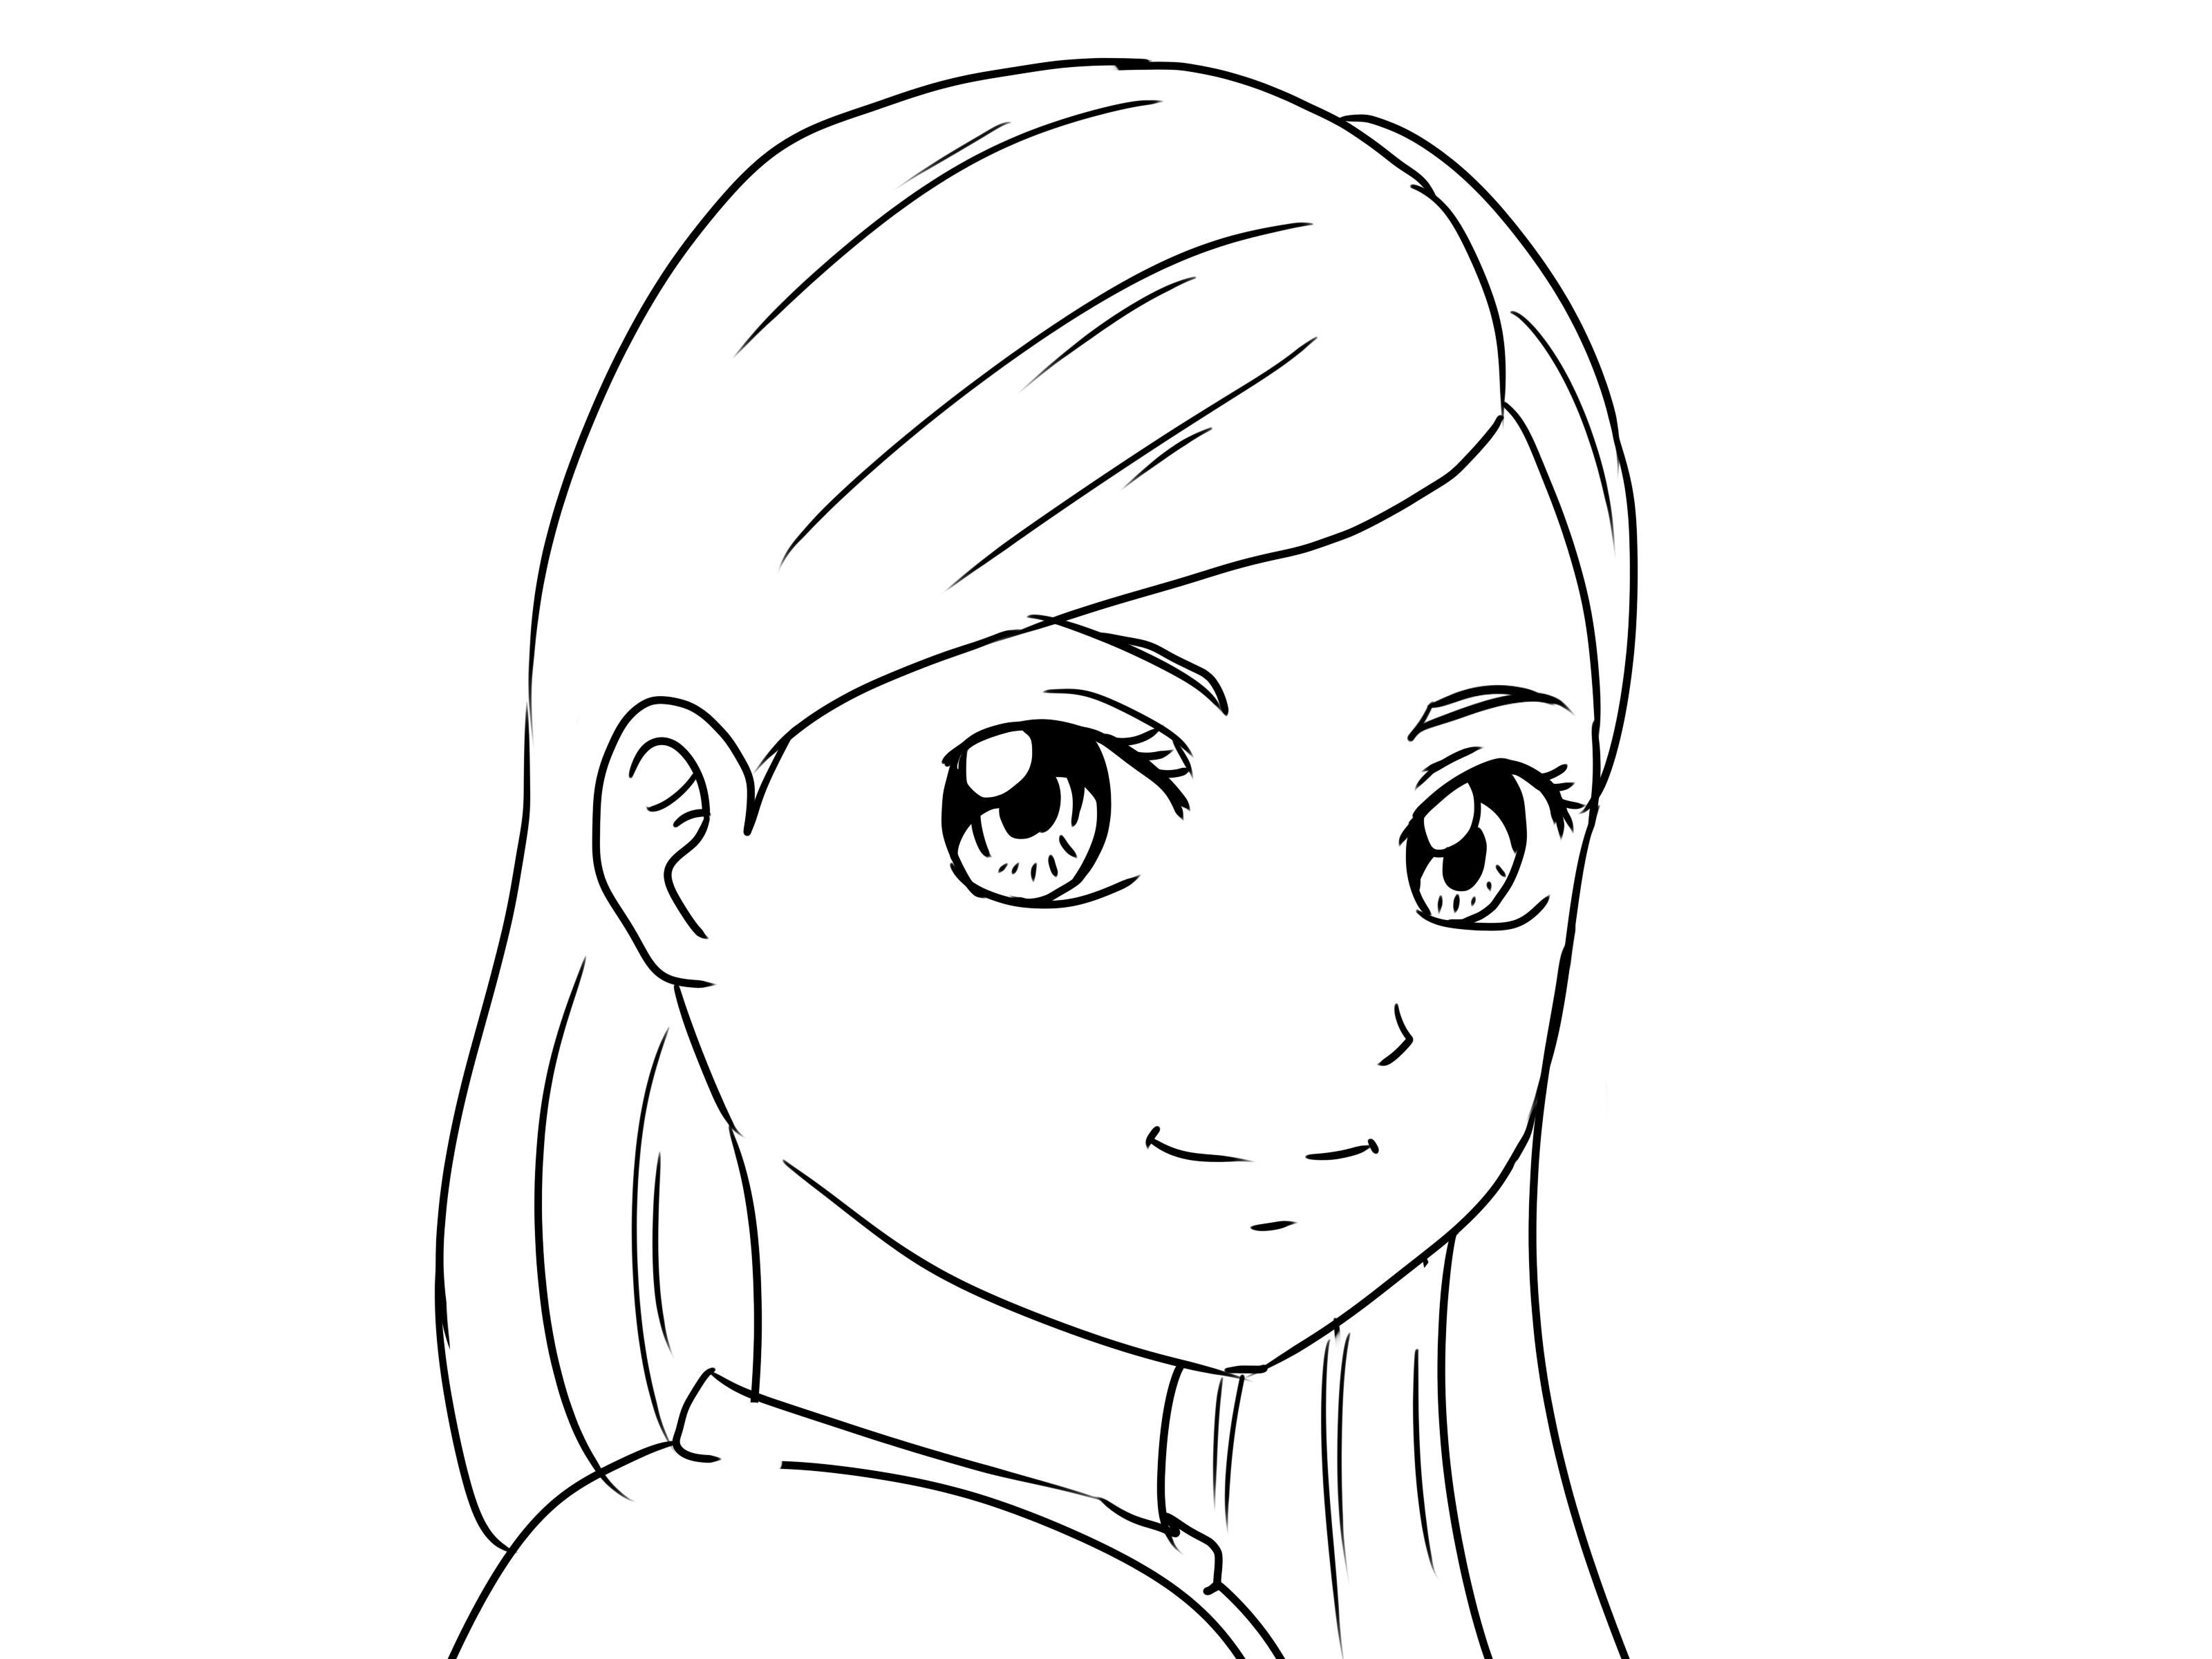 3200x2400 Cartoon Images To Draw Girls How To Draw Yourself As A Manga Girl